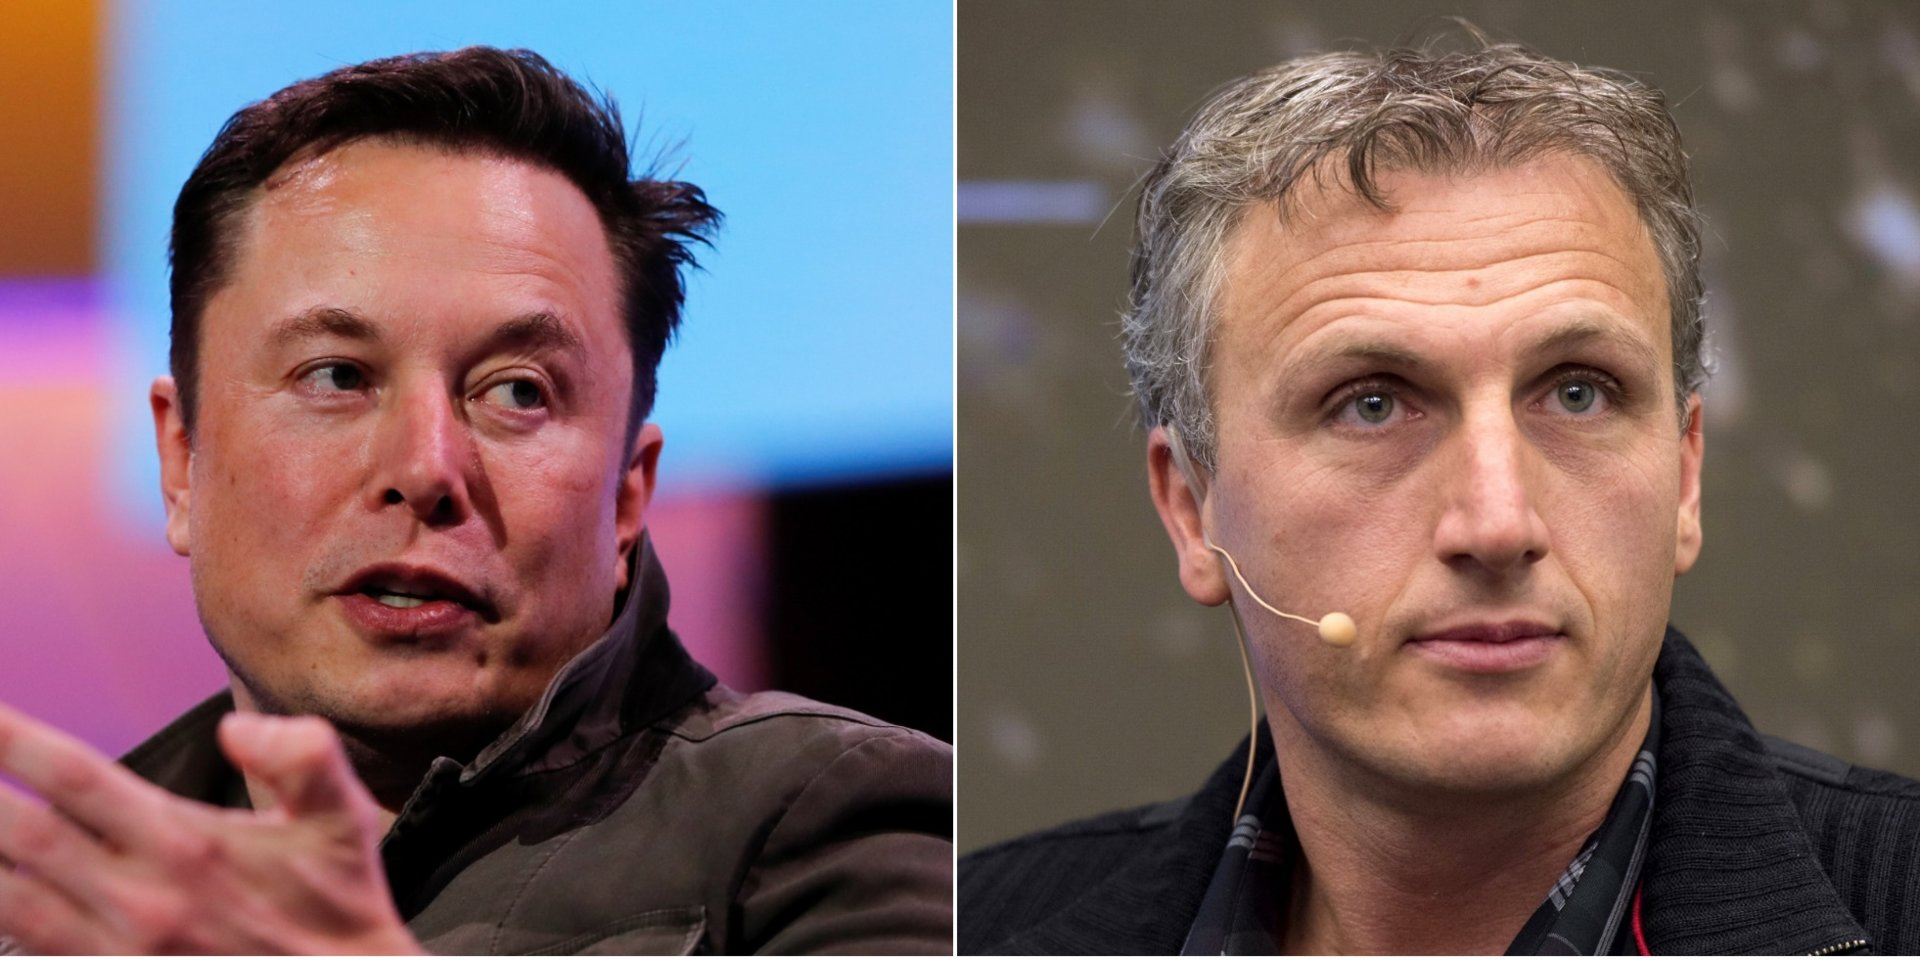 Angry shareholders accused Elon Musk of using Tesla and SpaceX to bail out his cousins' solar company for $2.6 billion